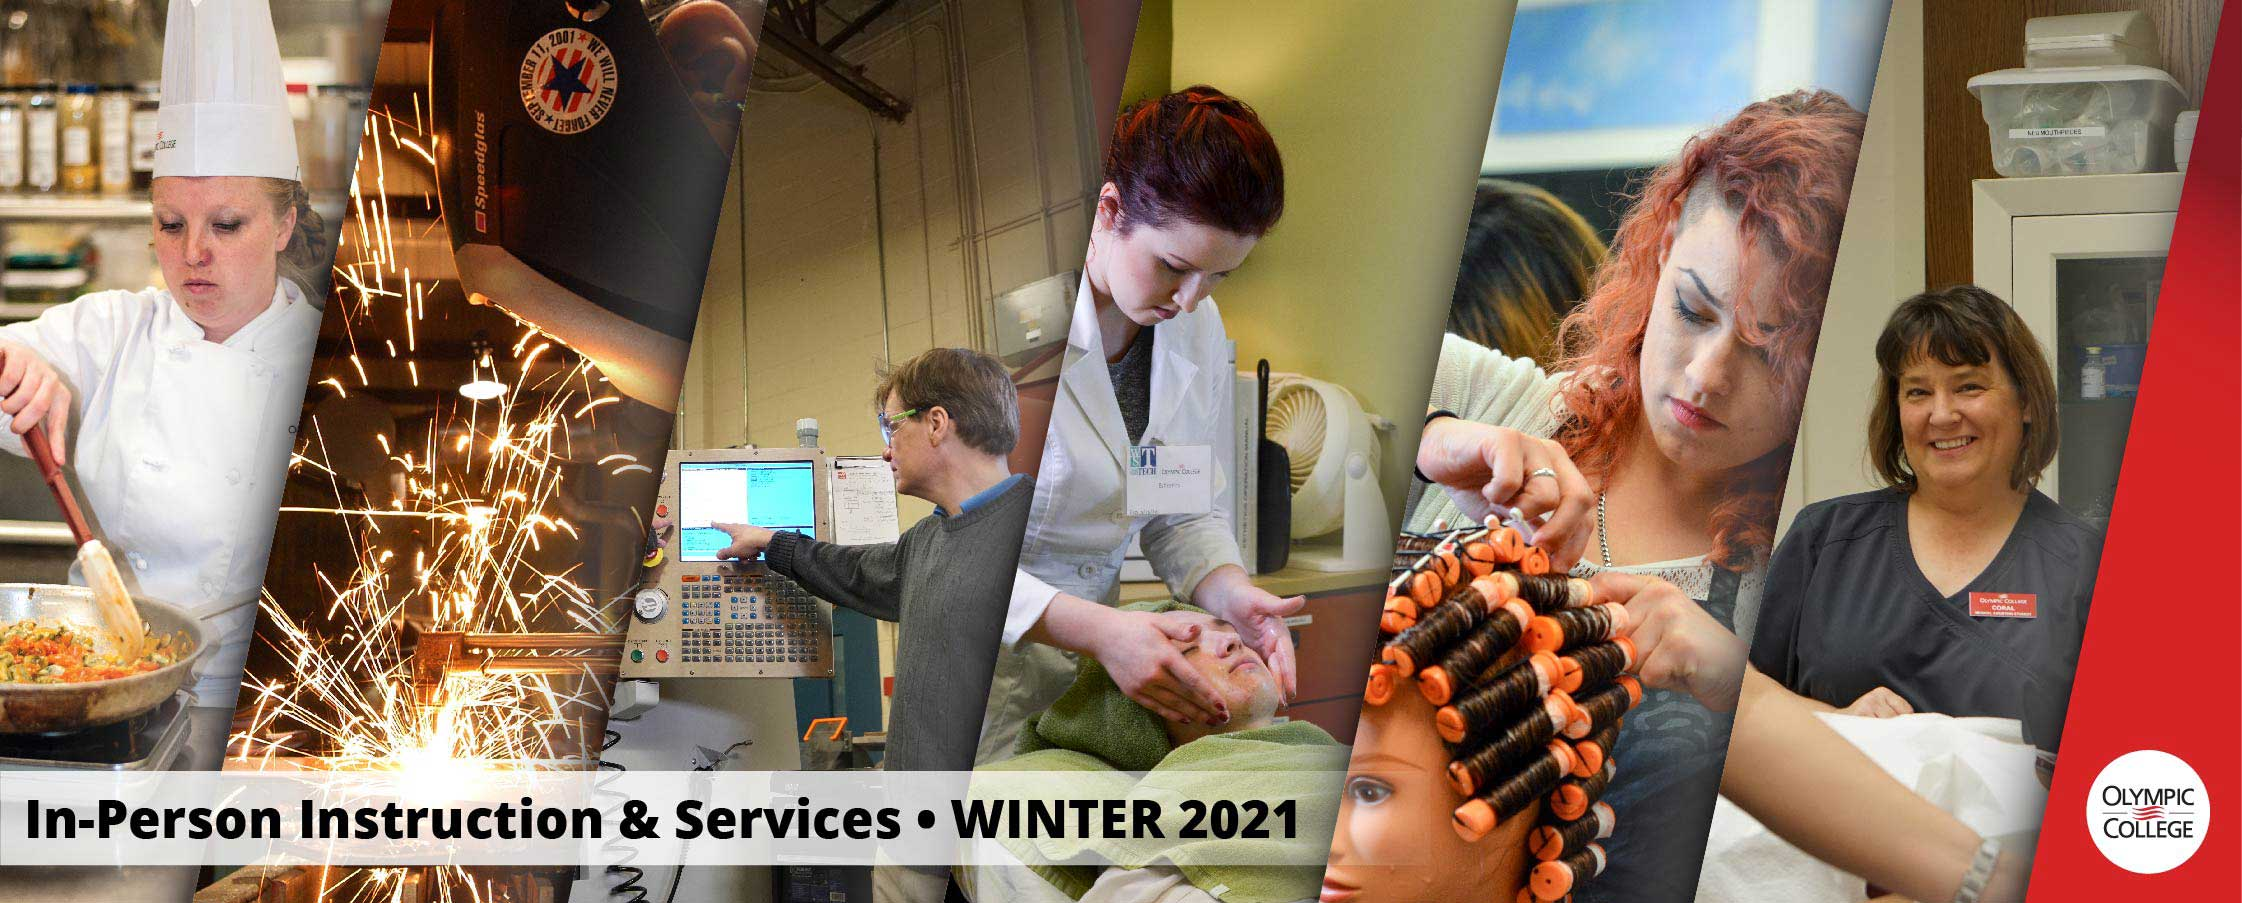 In-Person Instruction & Services, Winter 2021